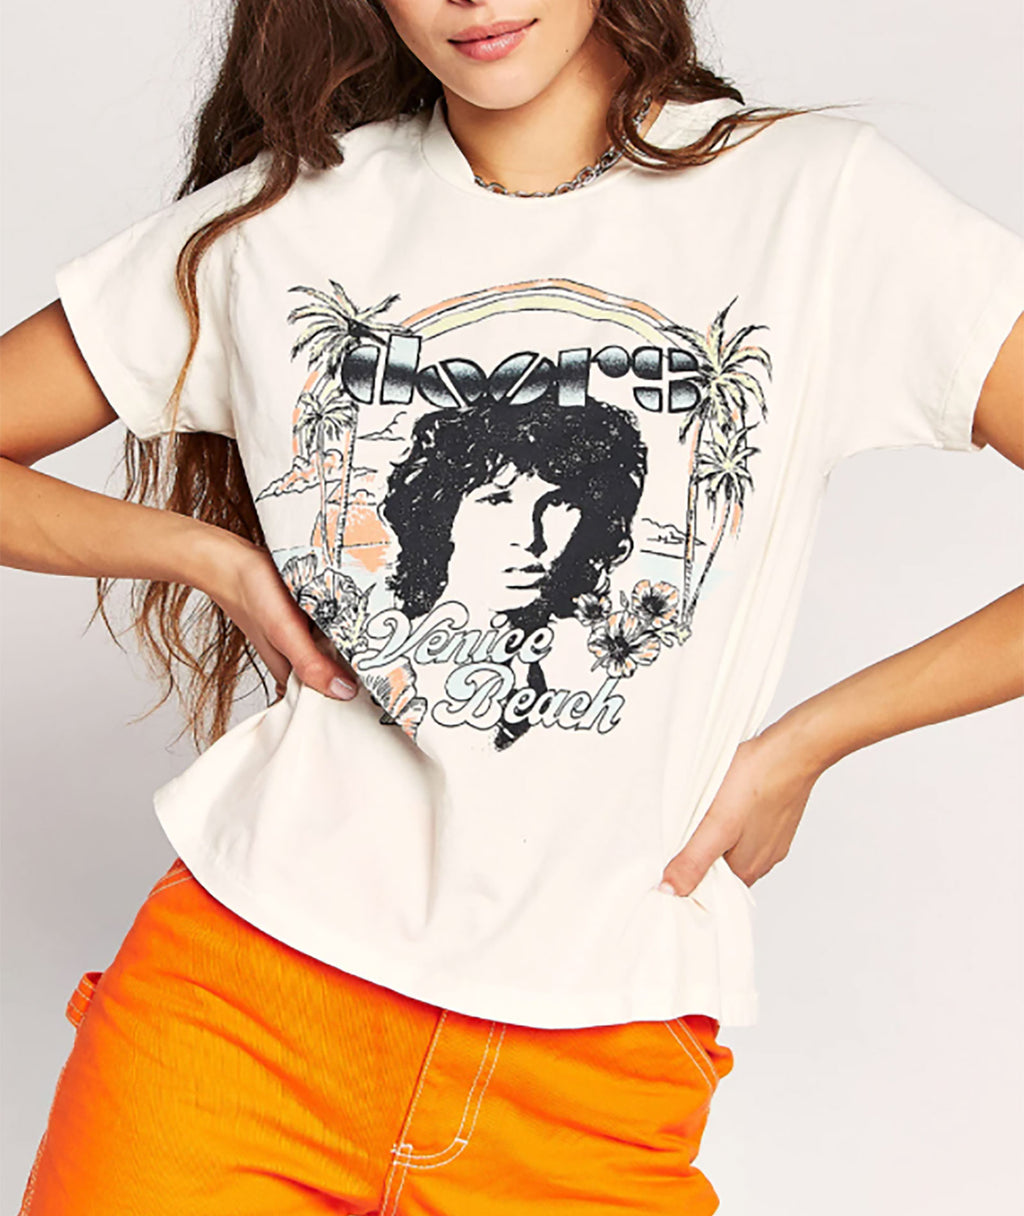 Daydreamer Women Doors Venice Beach Tee